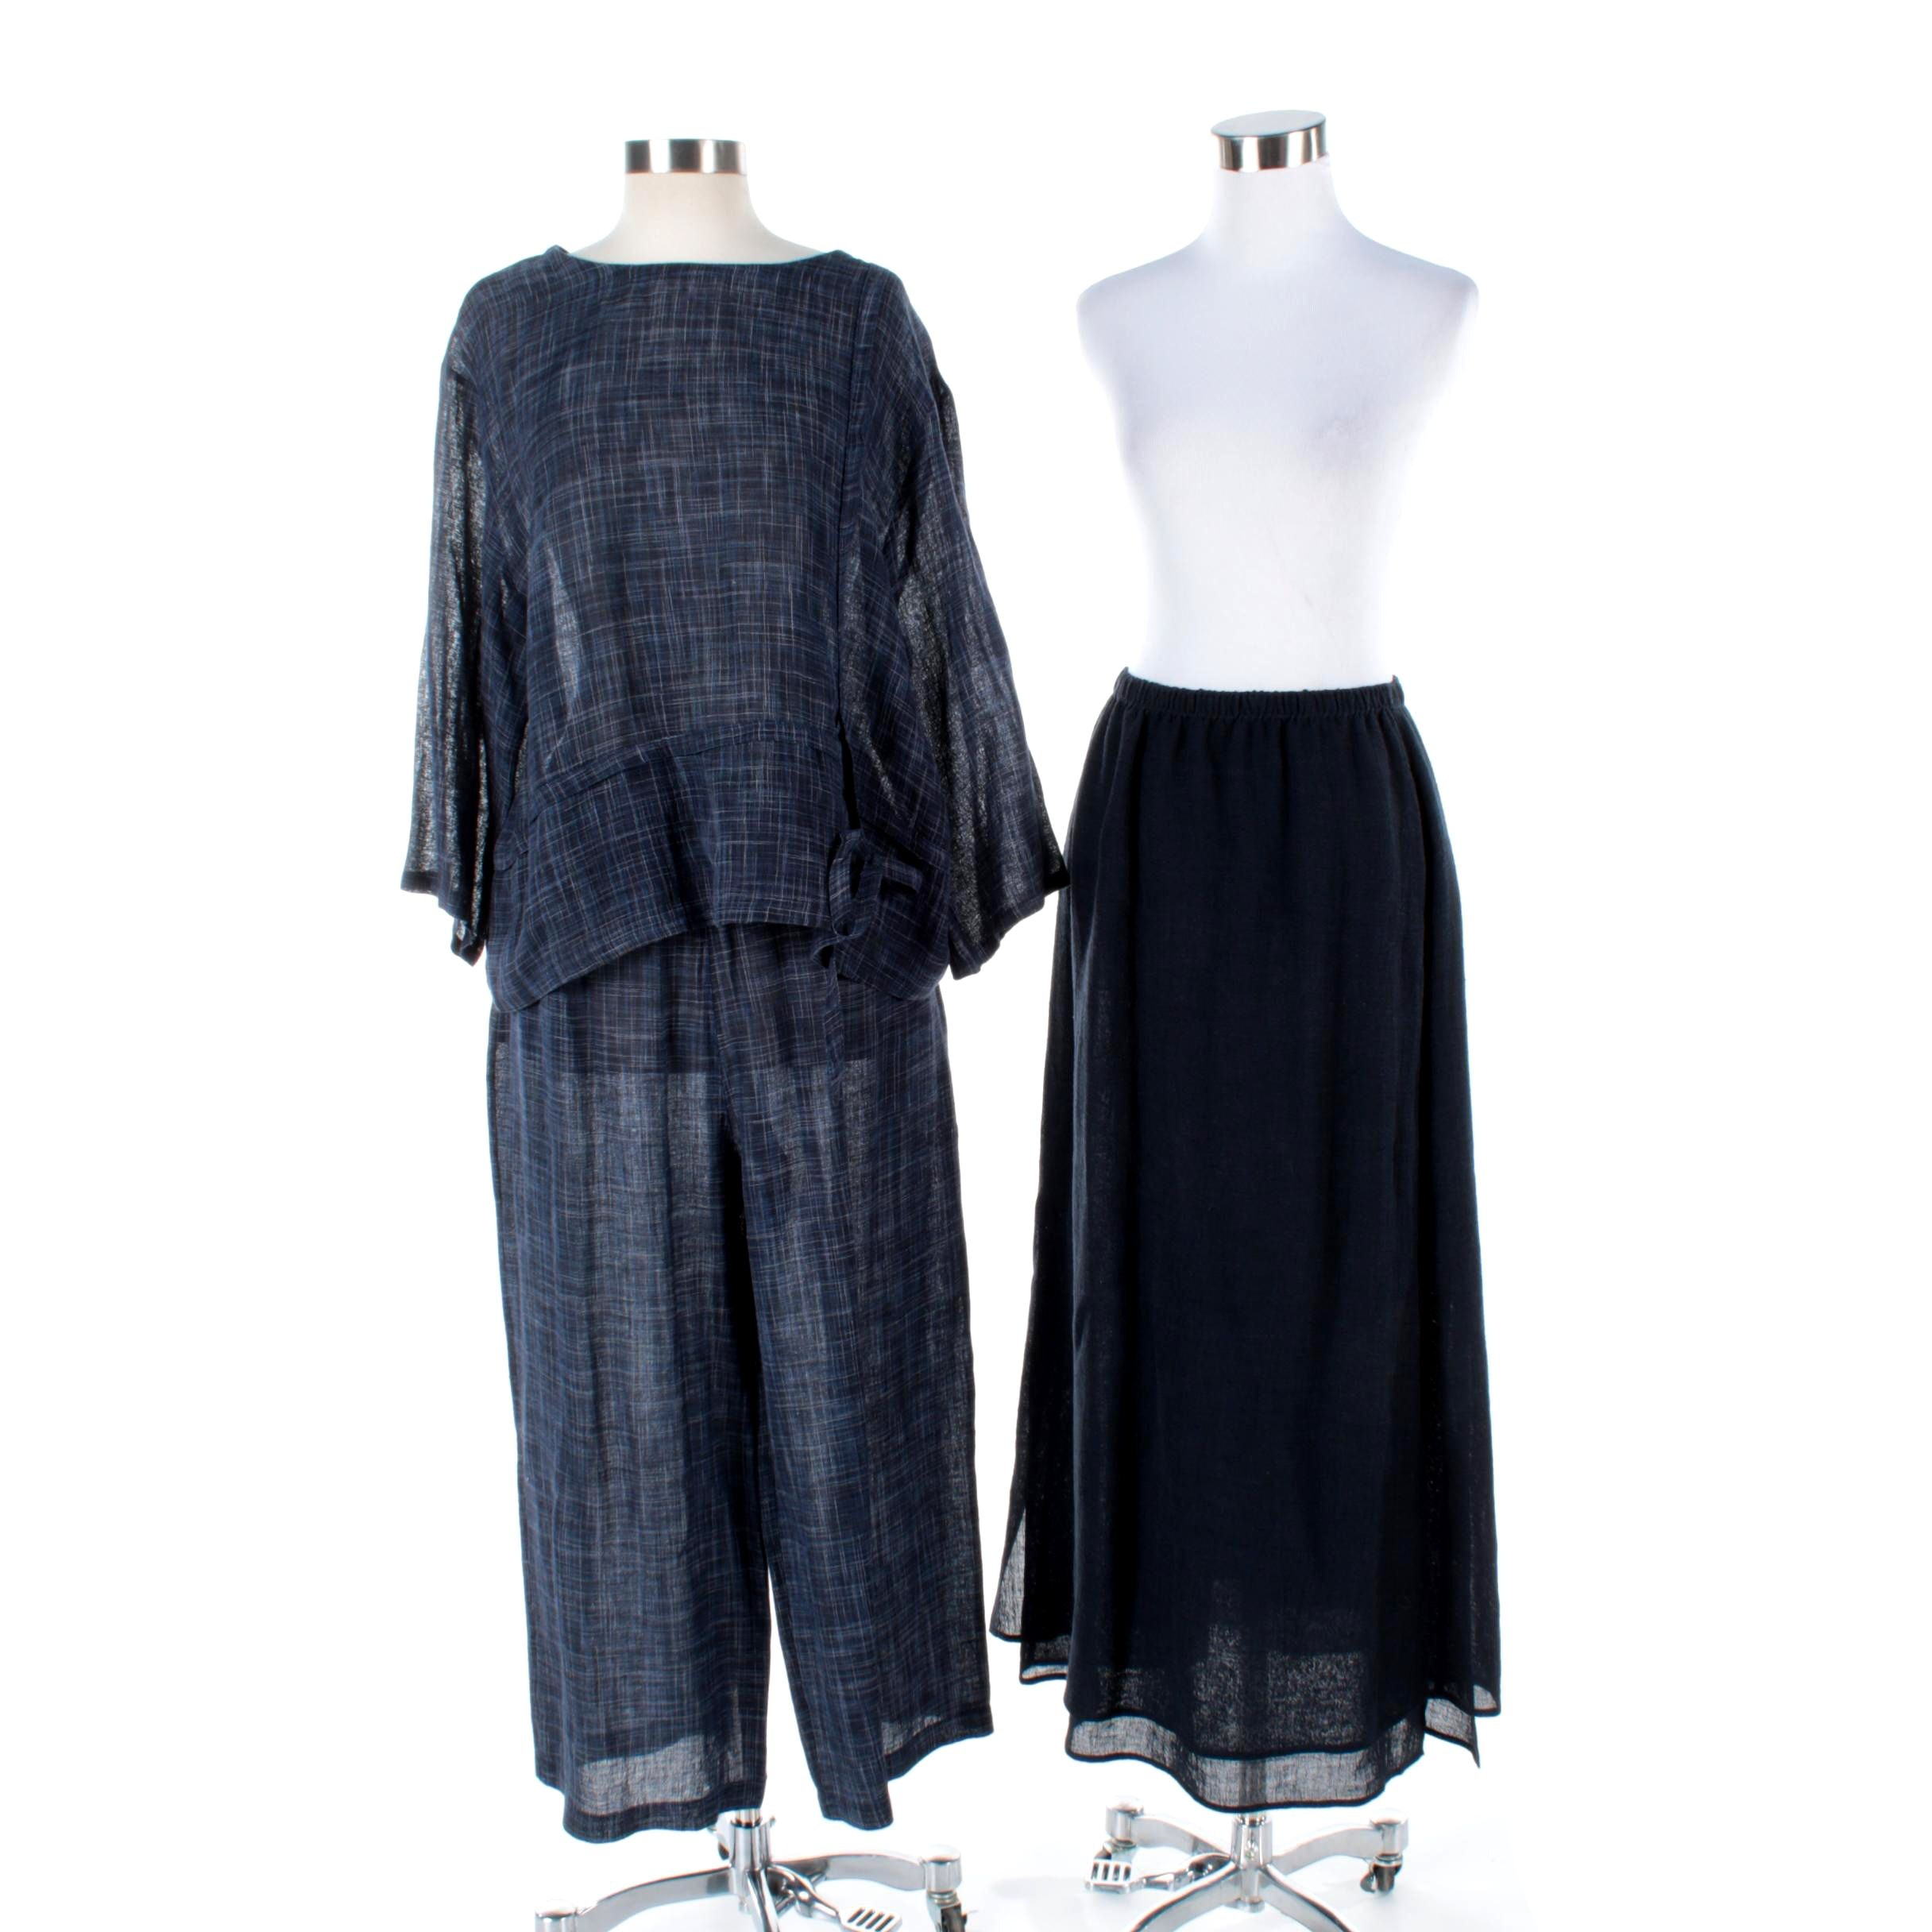 Women's Hino & Malee Linen Blend Clothing Separates